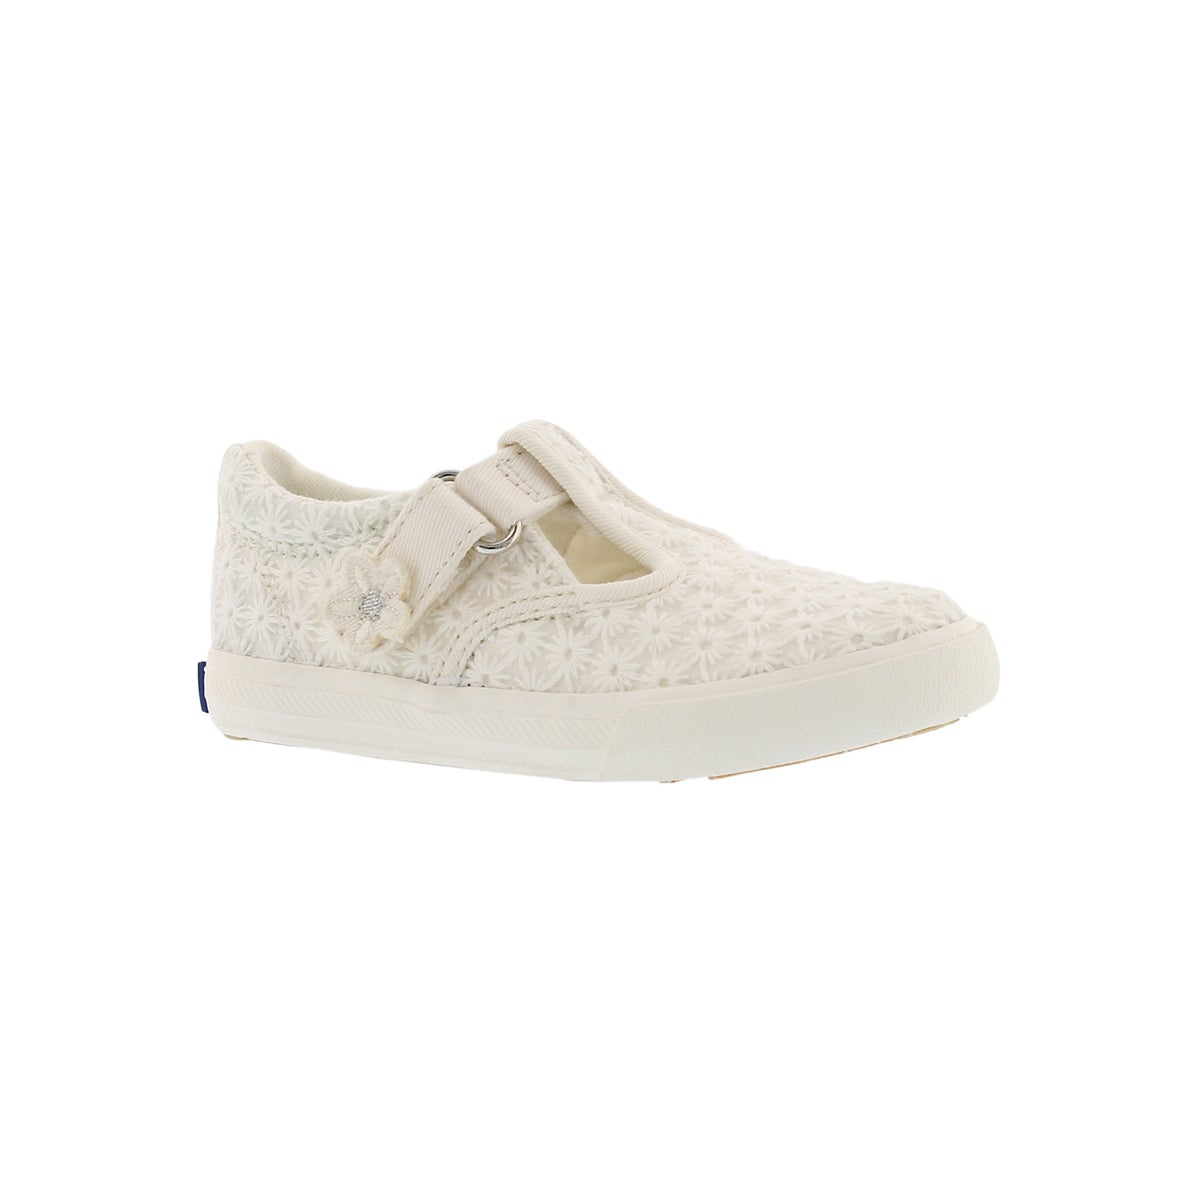 Infants' DAPHNE ivory casual sneakers